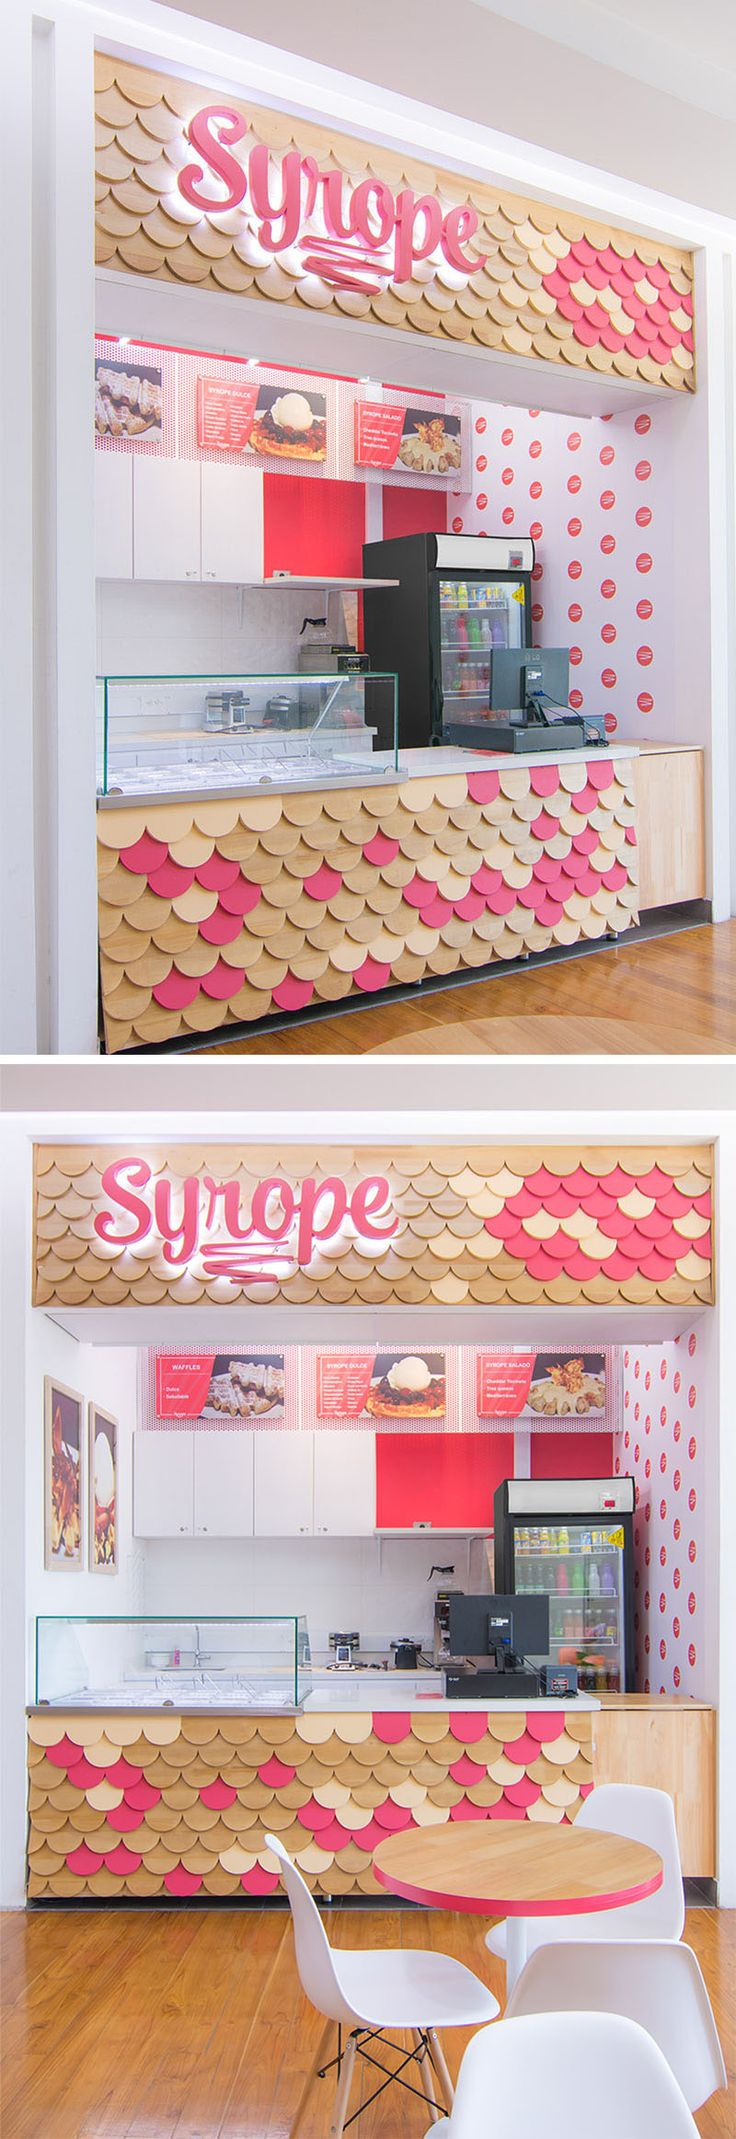 This retail storefront features a bright and colorful design, with a textural scalloped patterned facade made from wood, with some of the pieces painted pink to match the logo, while the remainder of the storefront is white with just a few touches of pink.